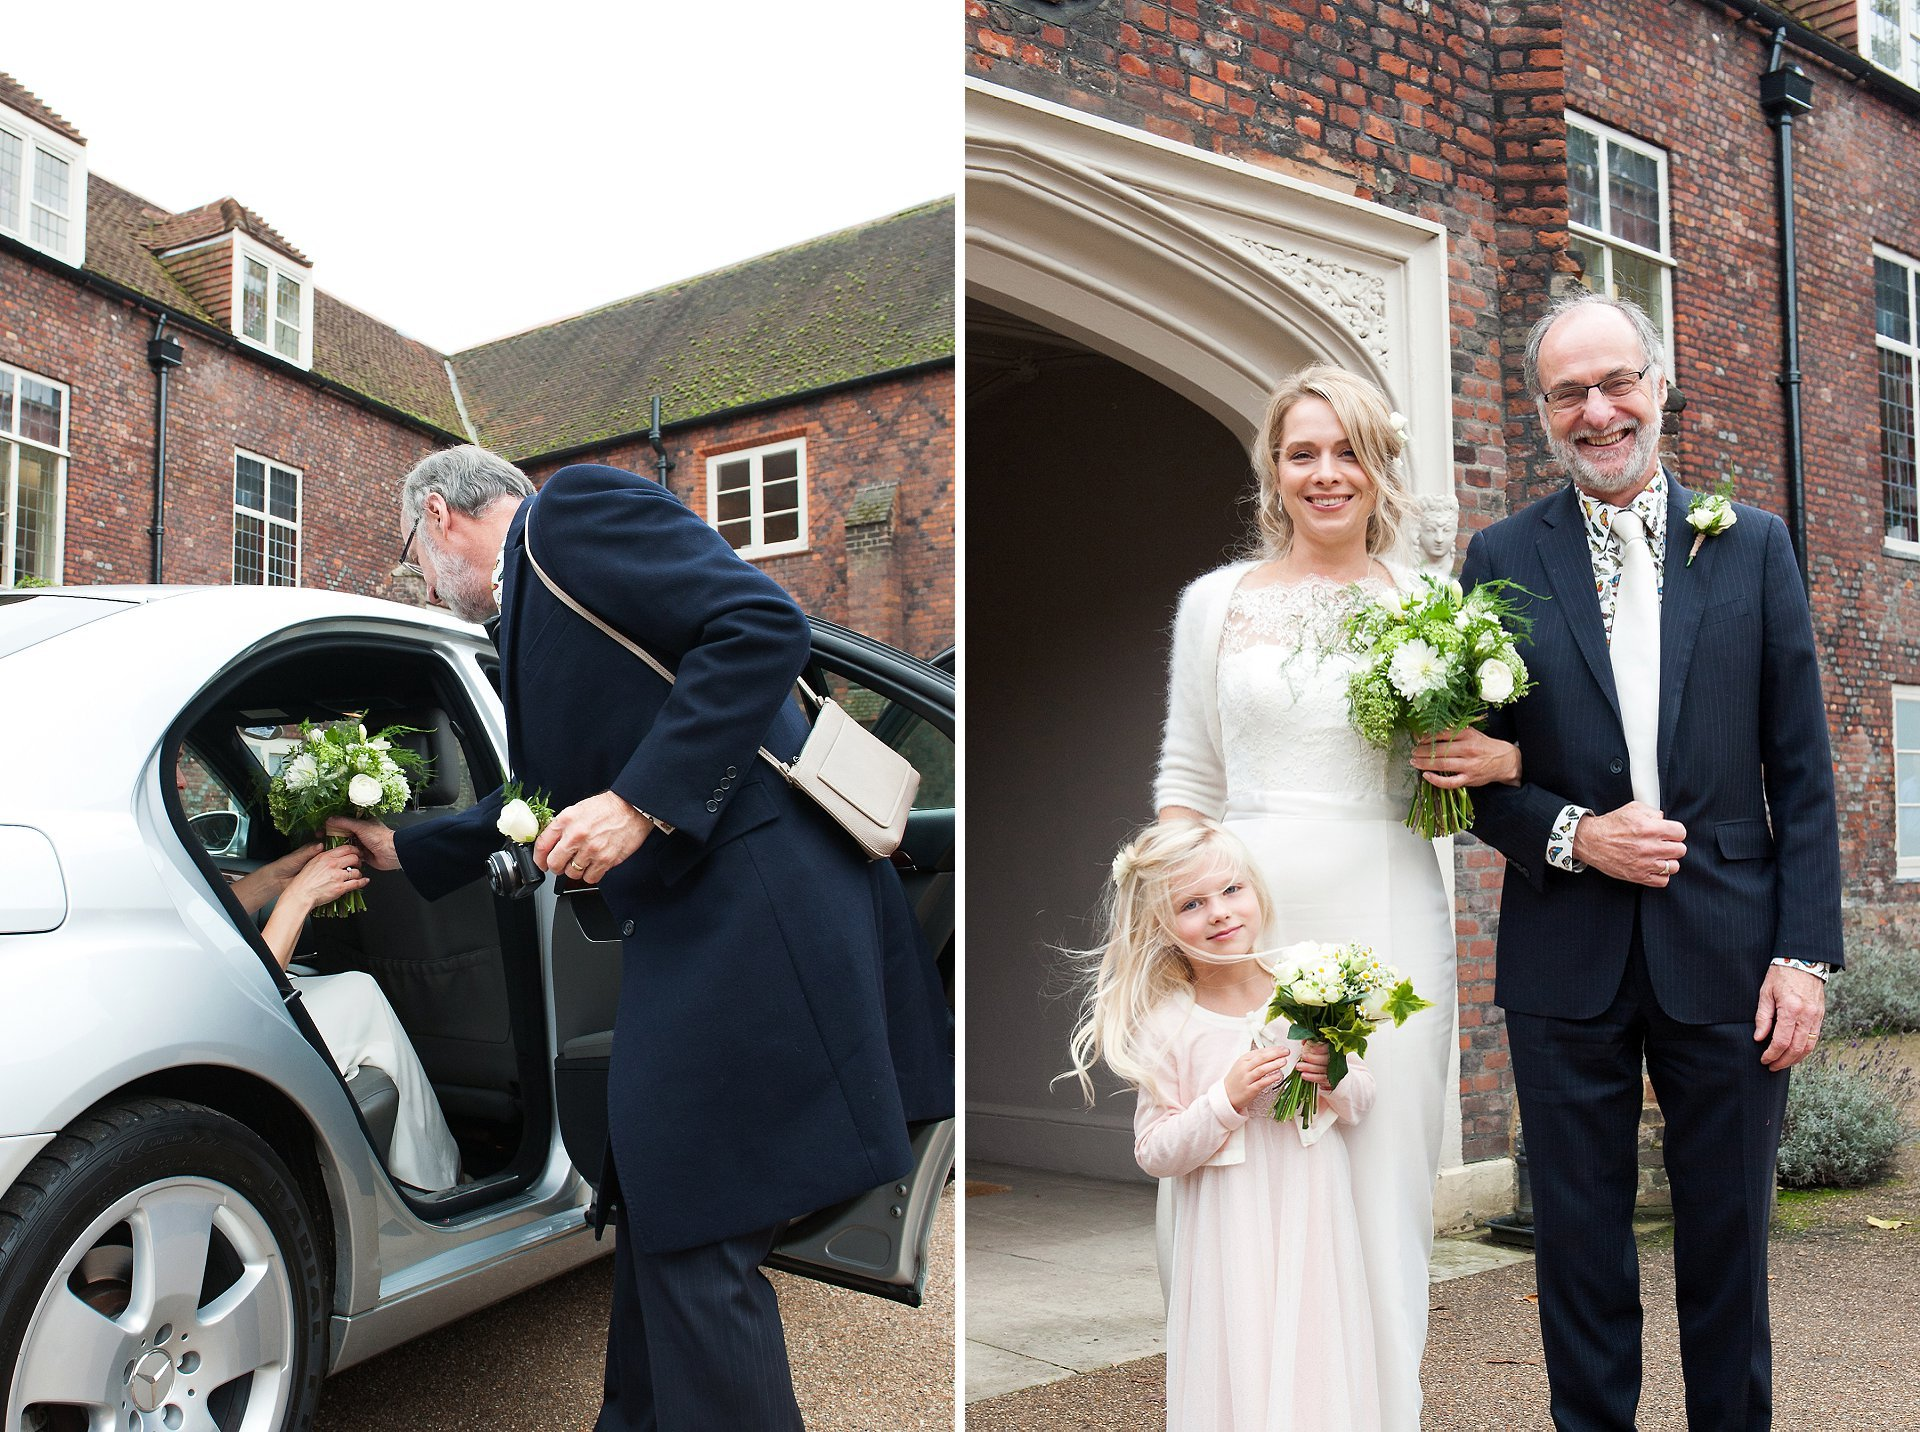 Bride, her father and bridesmaid arrive at Fulham Palace for an Autumn wedding